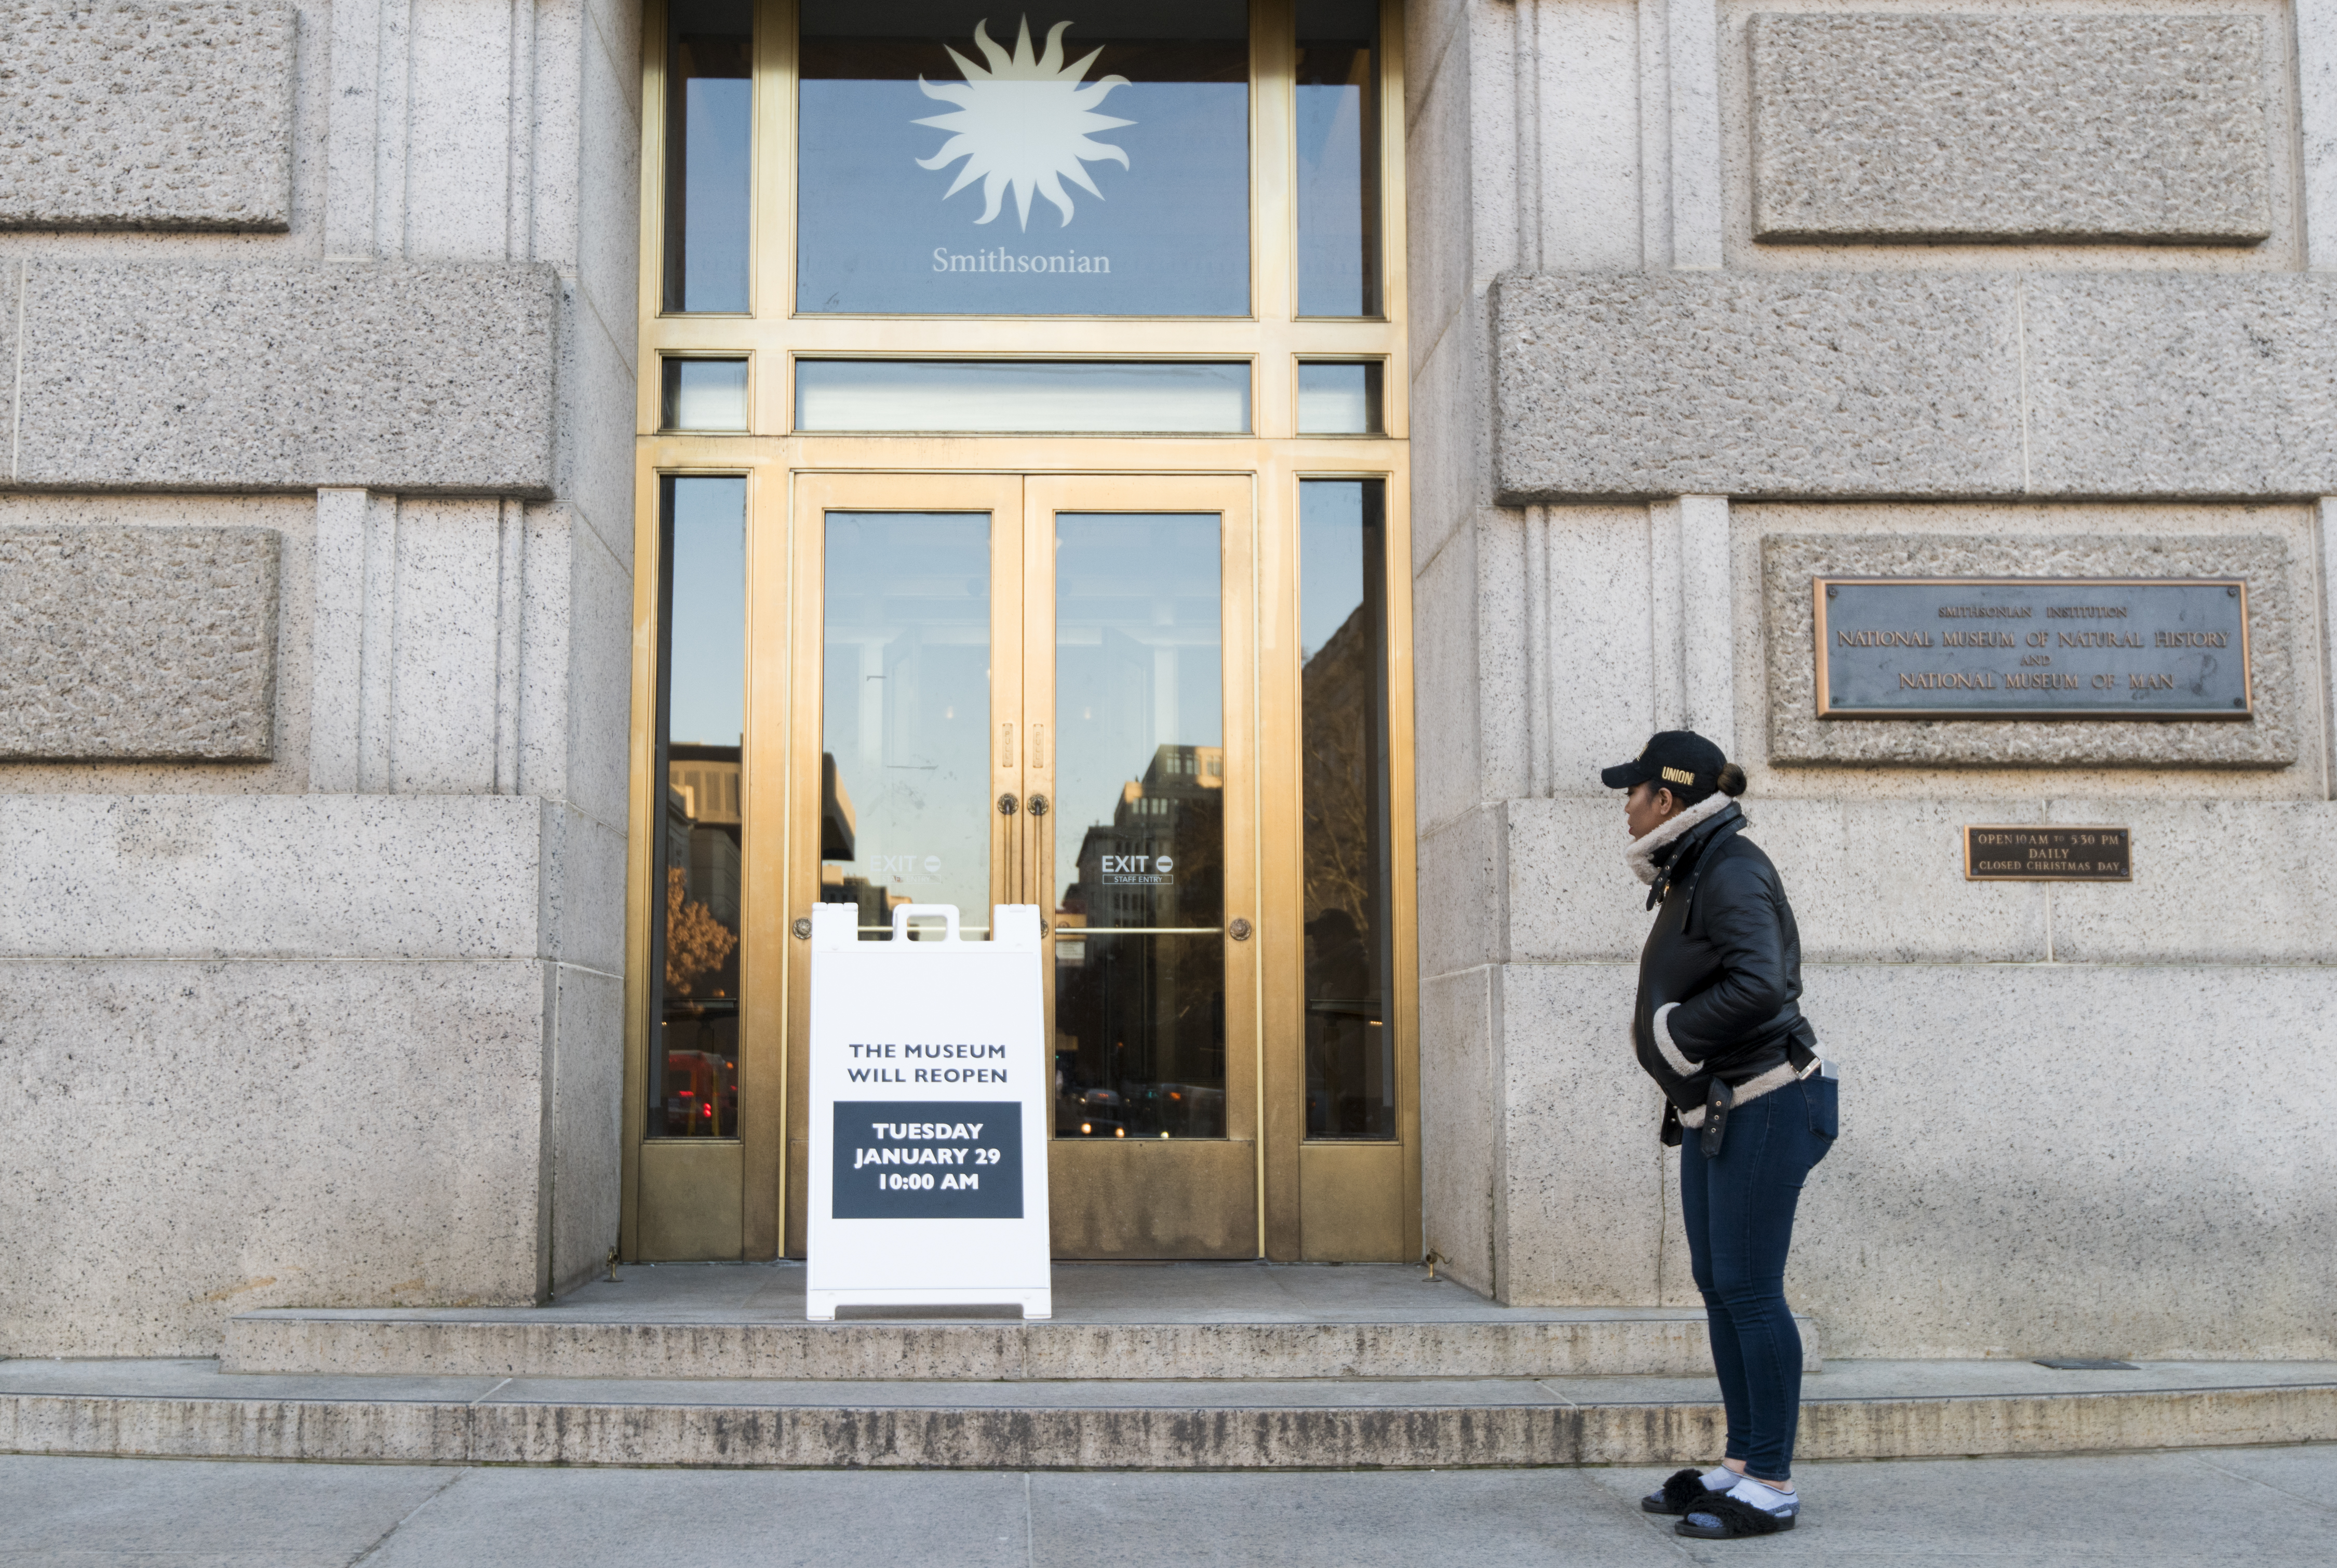 UNITED STATES - JANUARY 28: A sign notifies a visitor on Monday, Jan. 28, 2019, that the Smithsonian National Museum of Natural History will reopen in the morning after the government shutdown ended on Friday. (Photo By Bill Clark/CQ Roll Call)